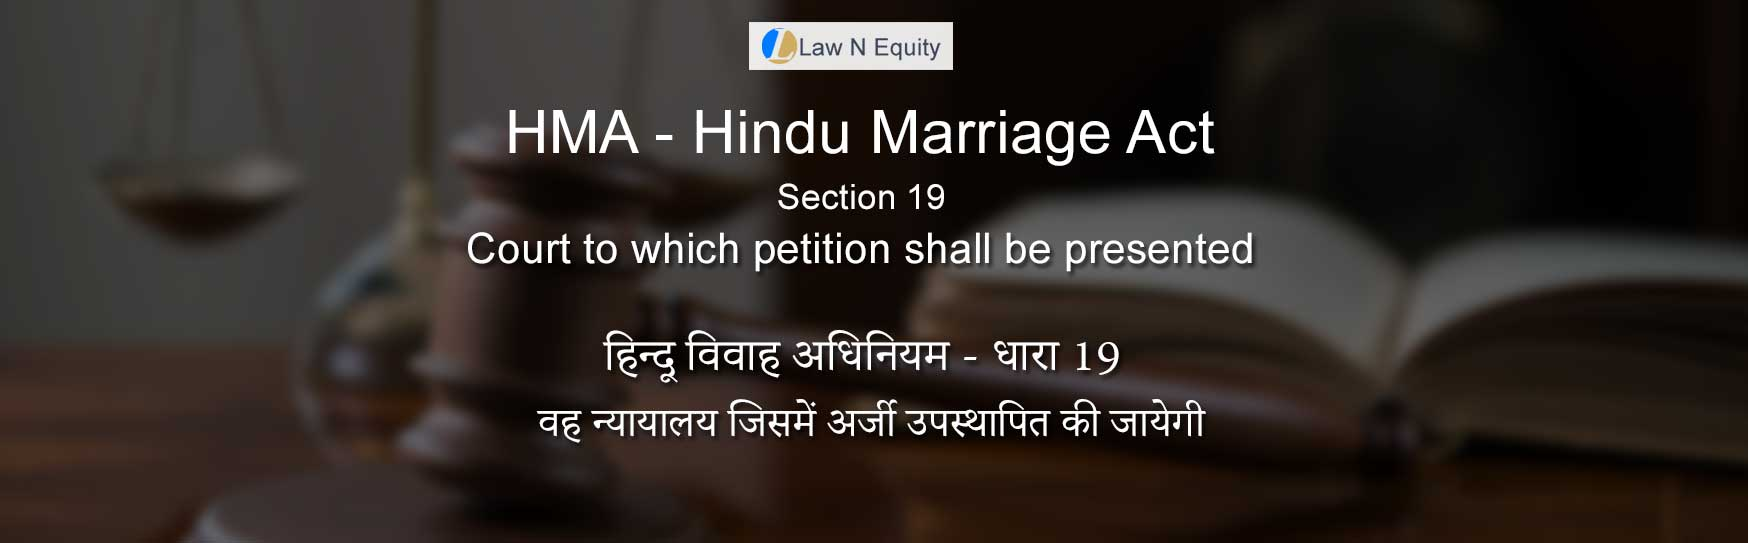 Hindu Marriage Act(HMA) Section 19